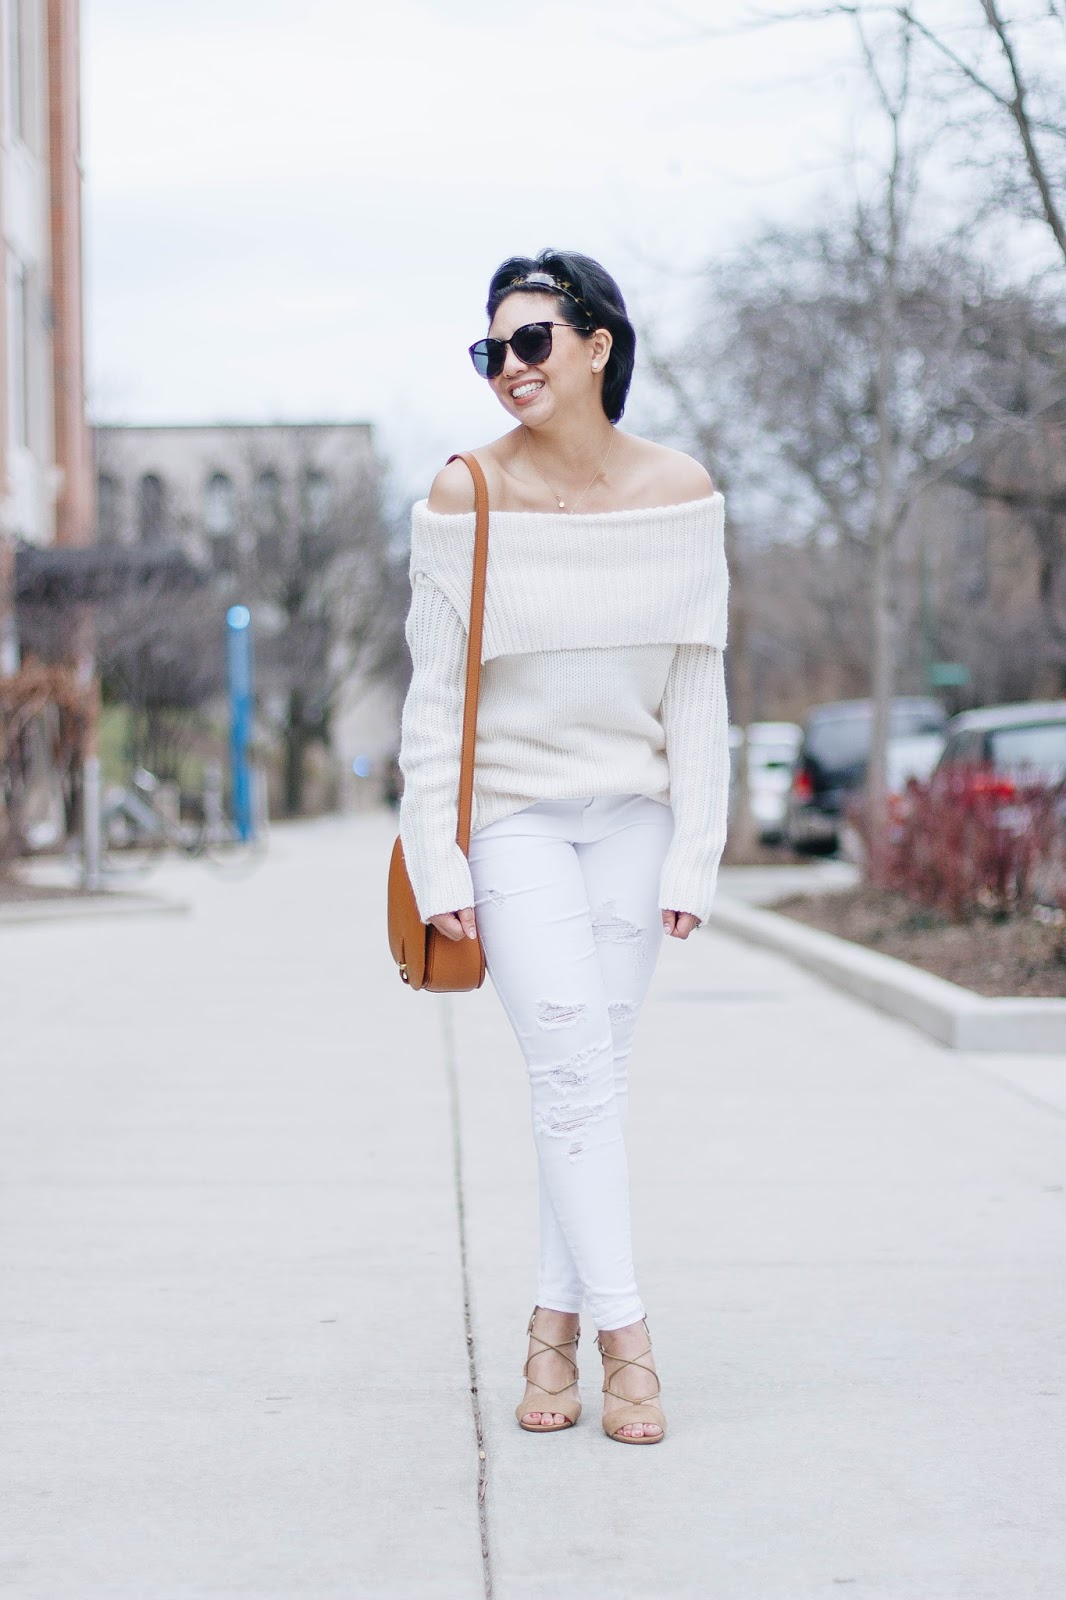 Off the Shoulder Sweater - RD's Obsessions